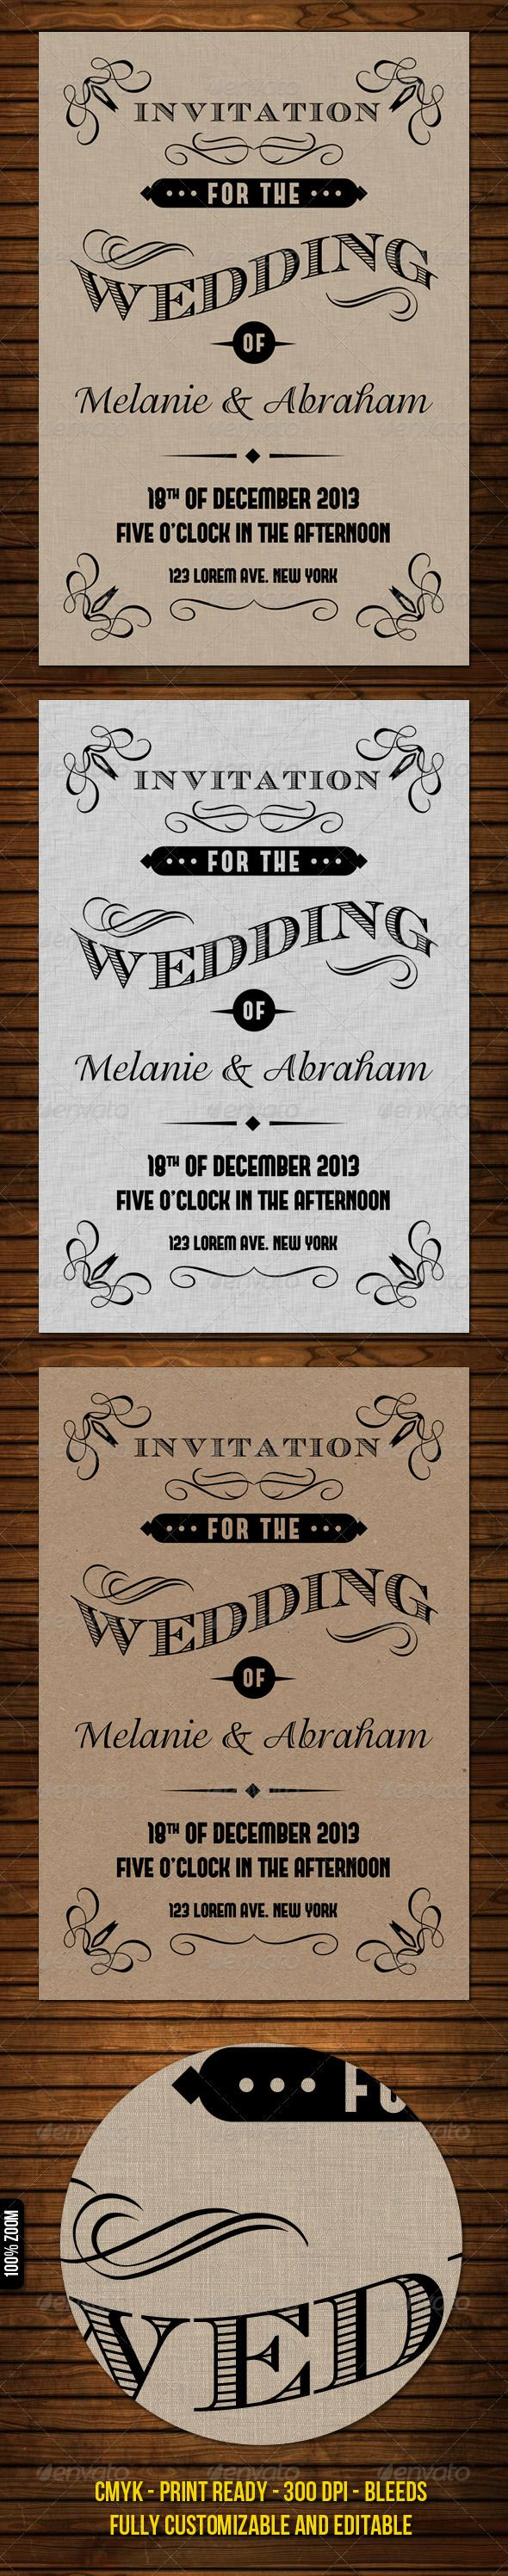 Old Vintage Wedding Invitation 94 best Print